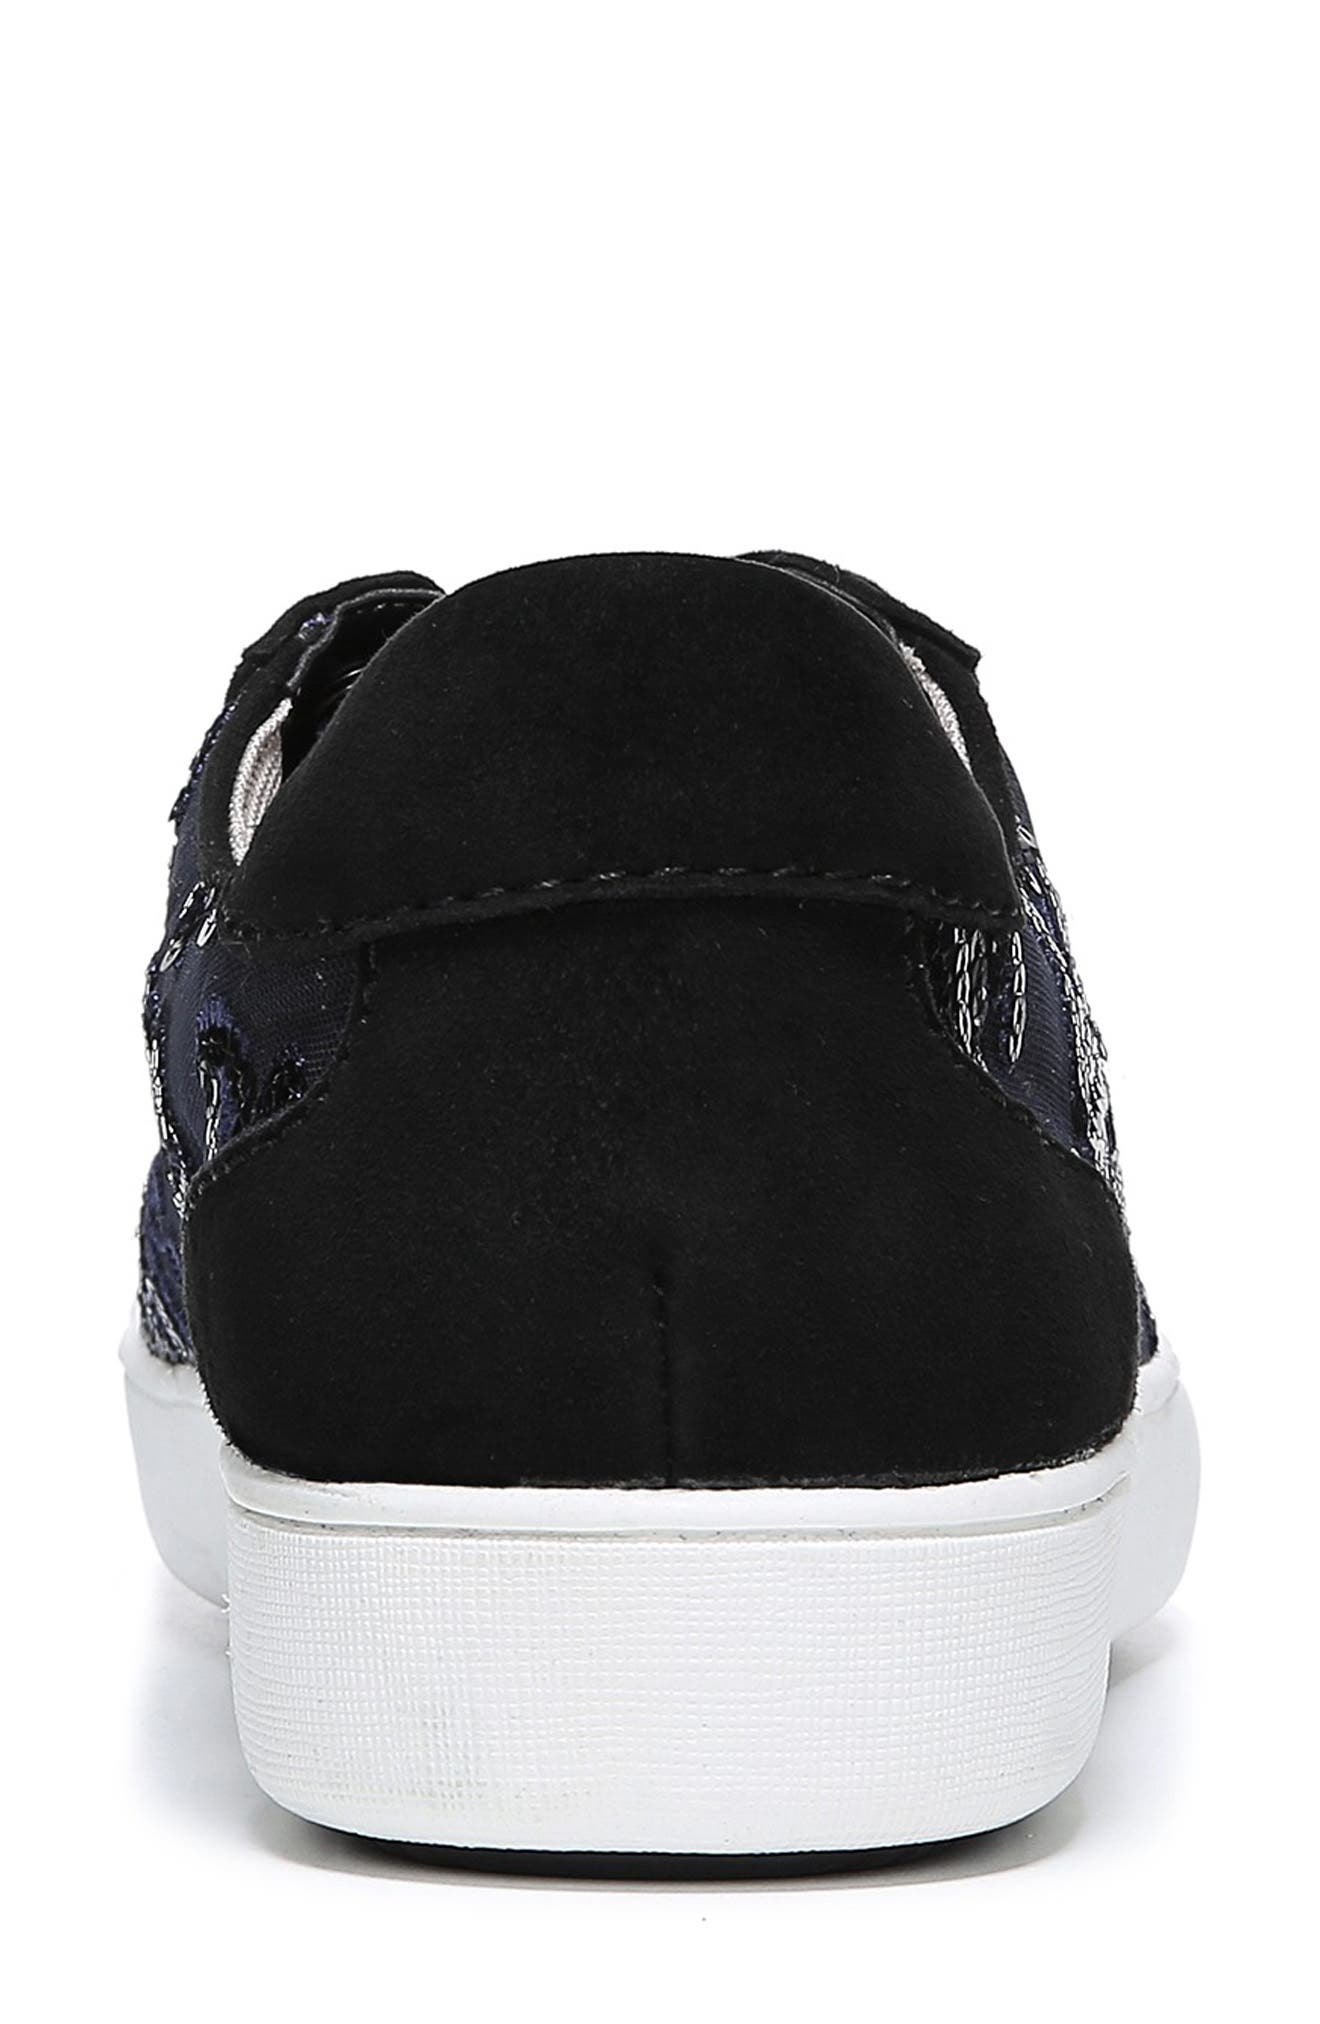 NATURALIZER, Morrison Sneaker, Alternate thumbnail 7, color, NAVY EMBROIDERED LACE